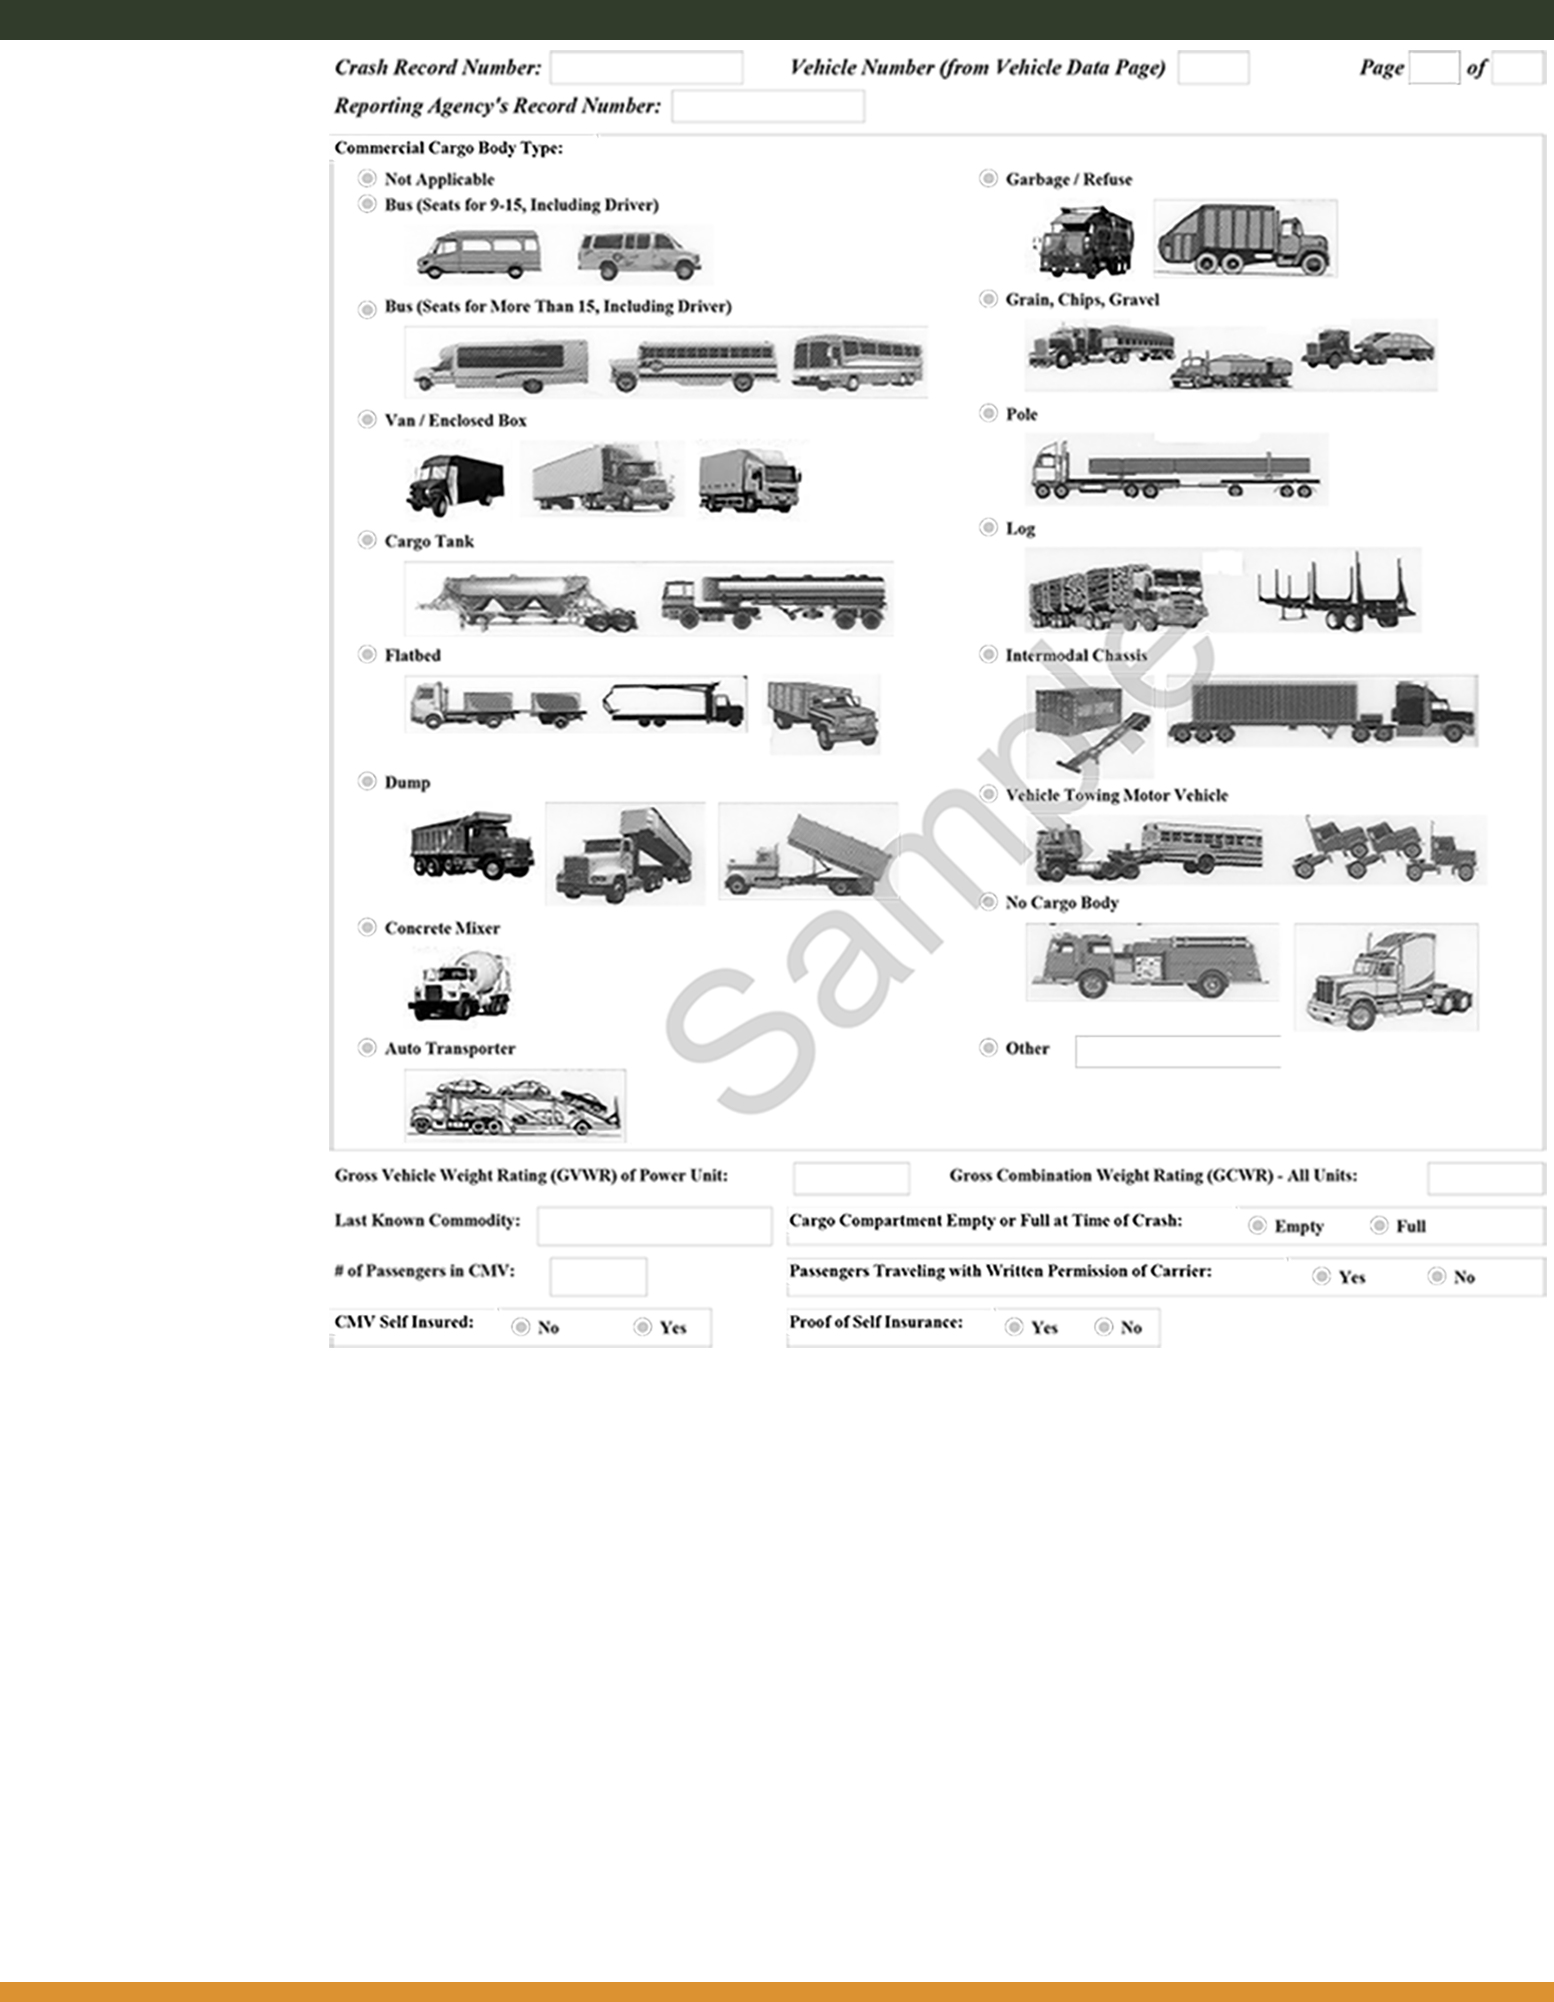 WV Accident Report Page 10